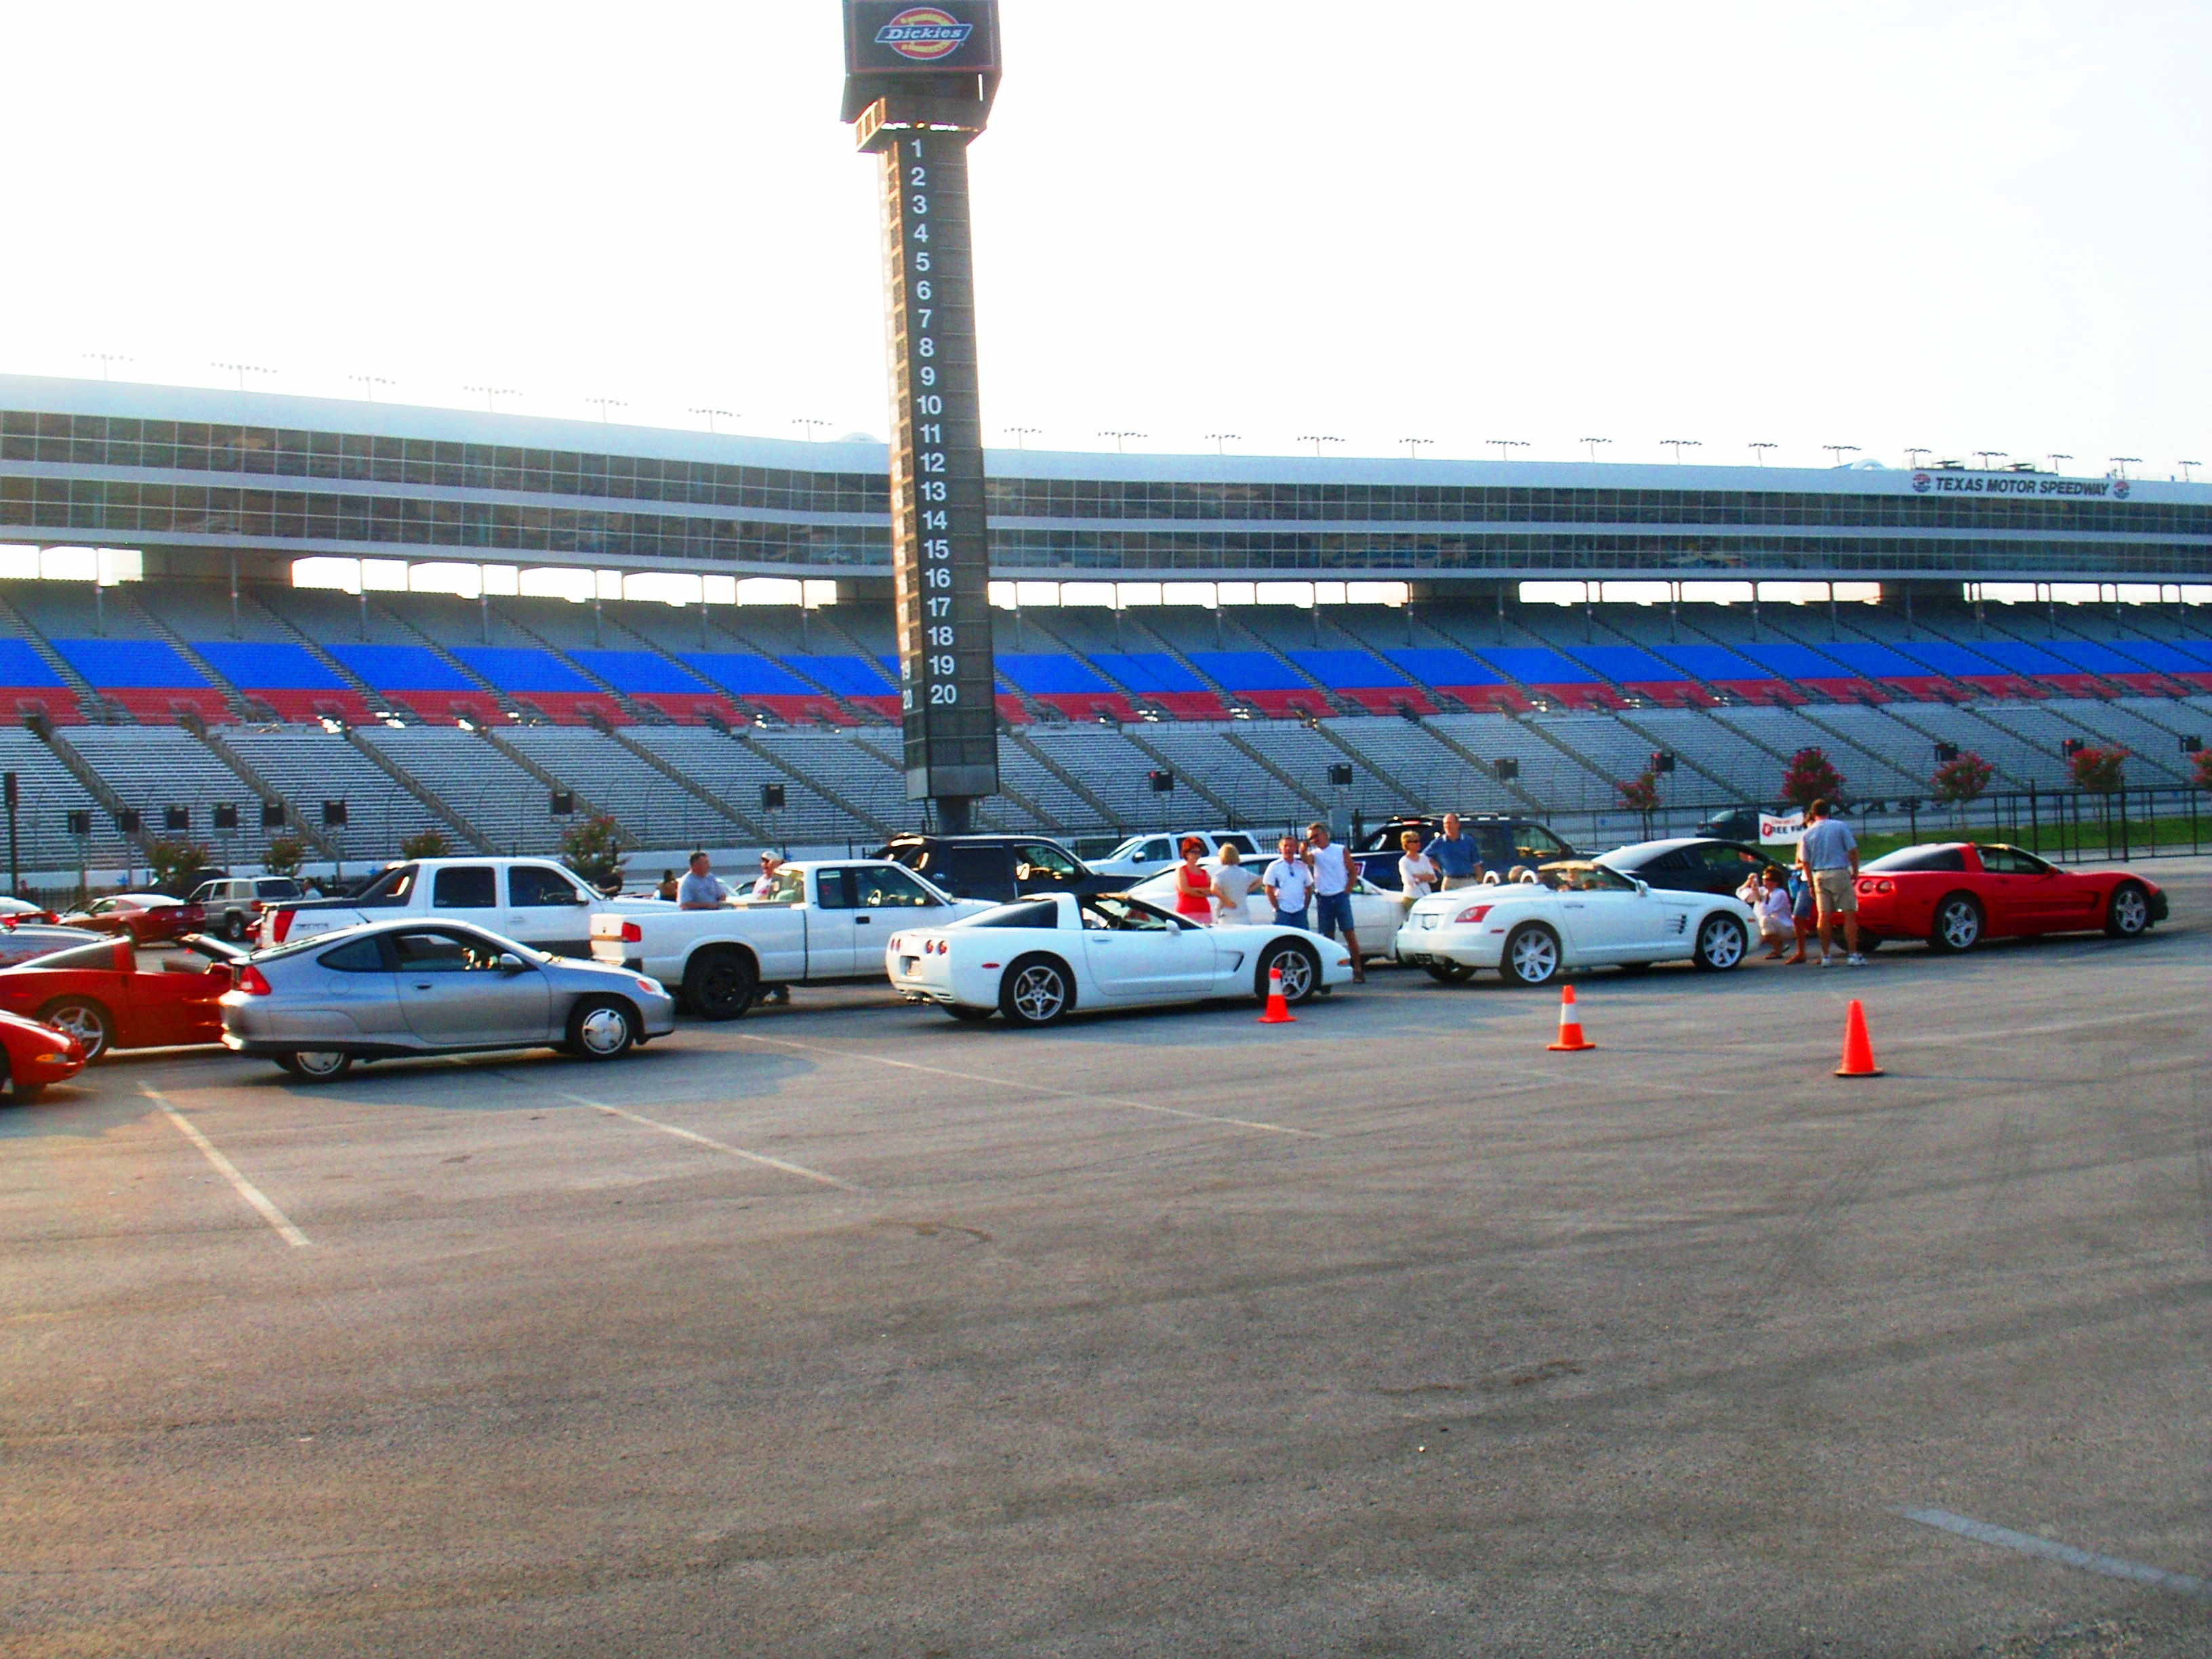 File:Texas Motor Speedway Fort Worth, TX – Drivers get out of their cars to discuses cars while others such as myself are just happy for this rare ...